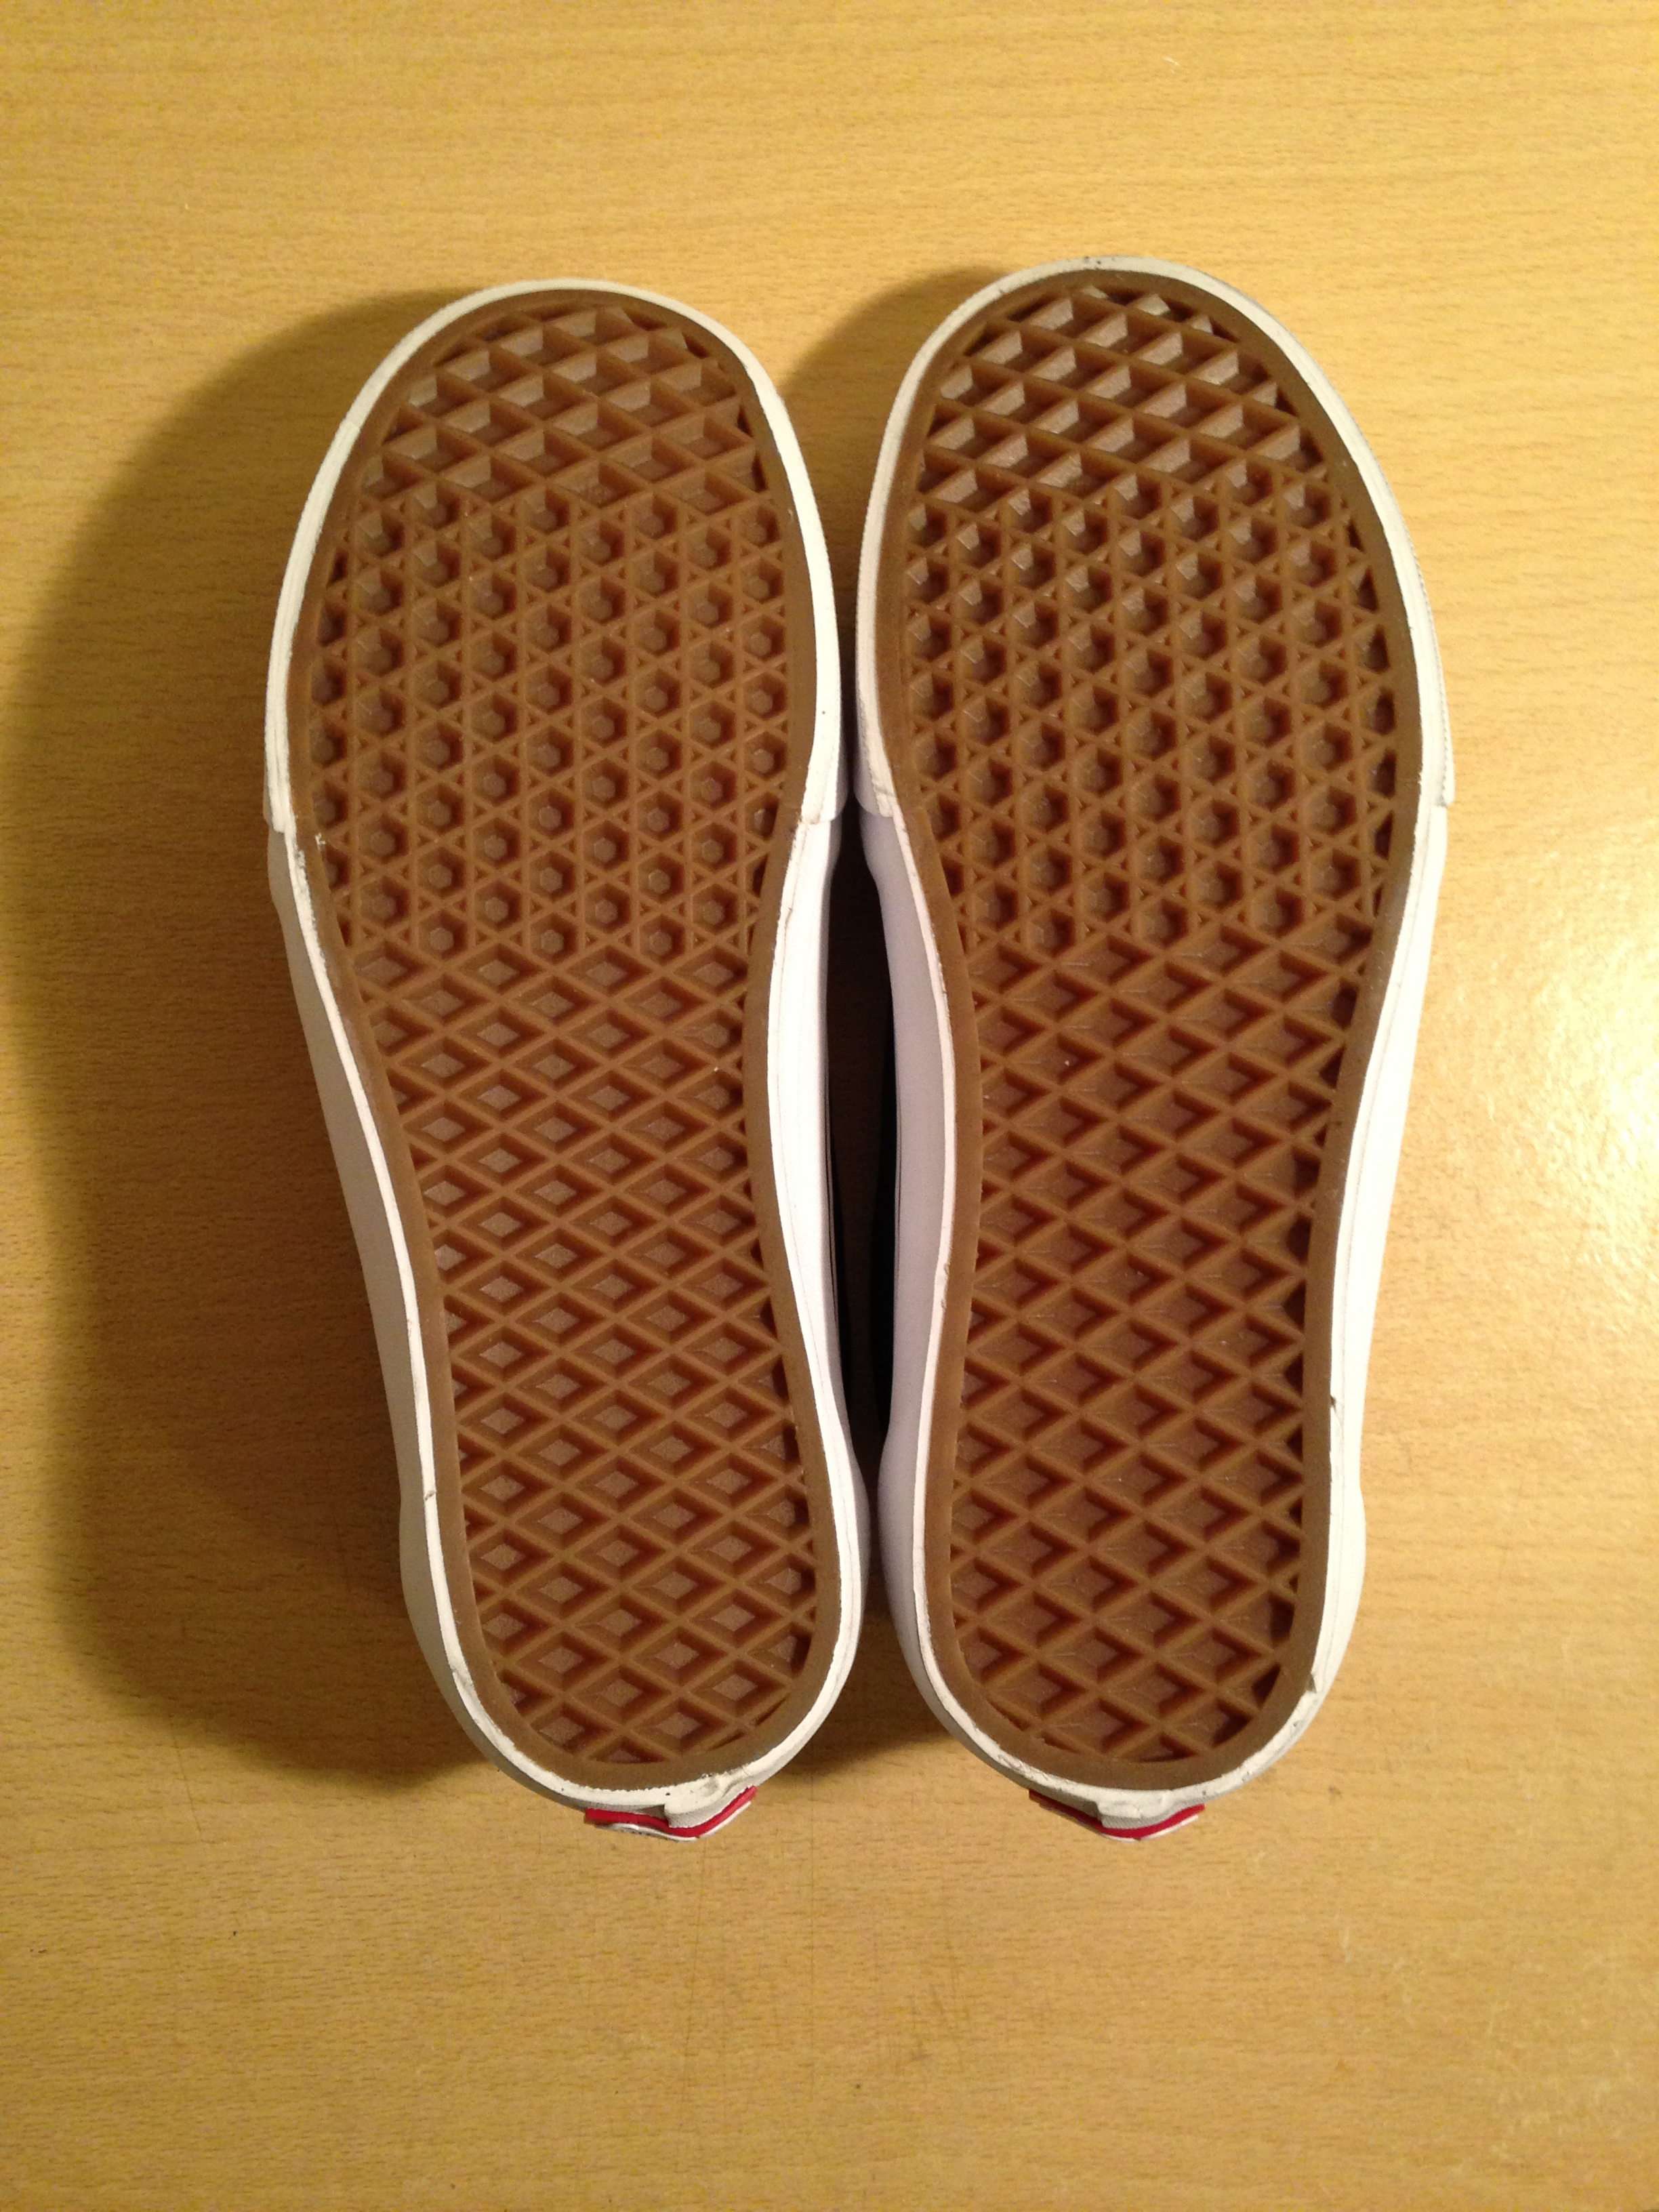 0a5876cfe8 Vans Rowley SOLOS Tongue Detail Top View Waffle Sole